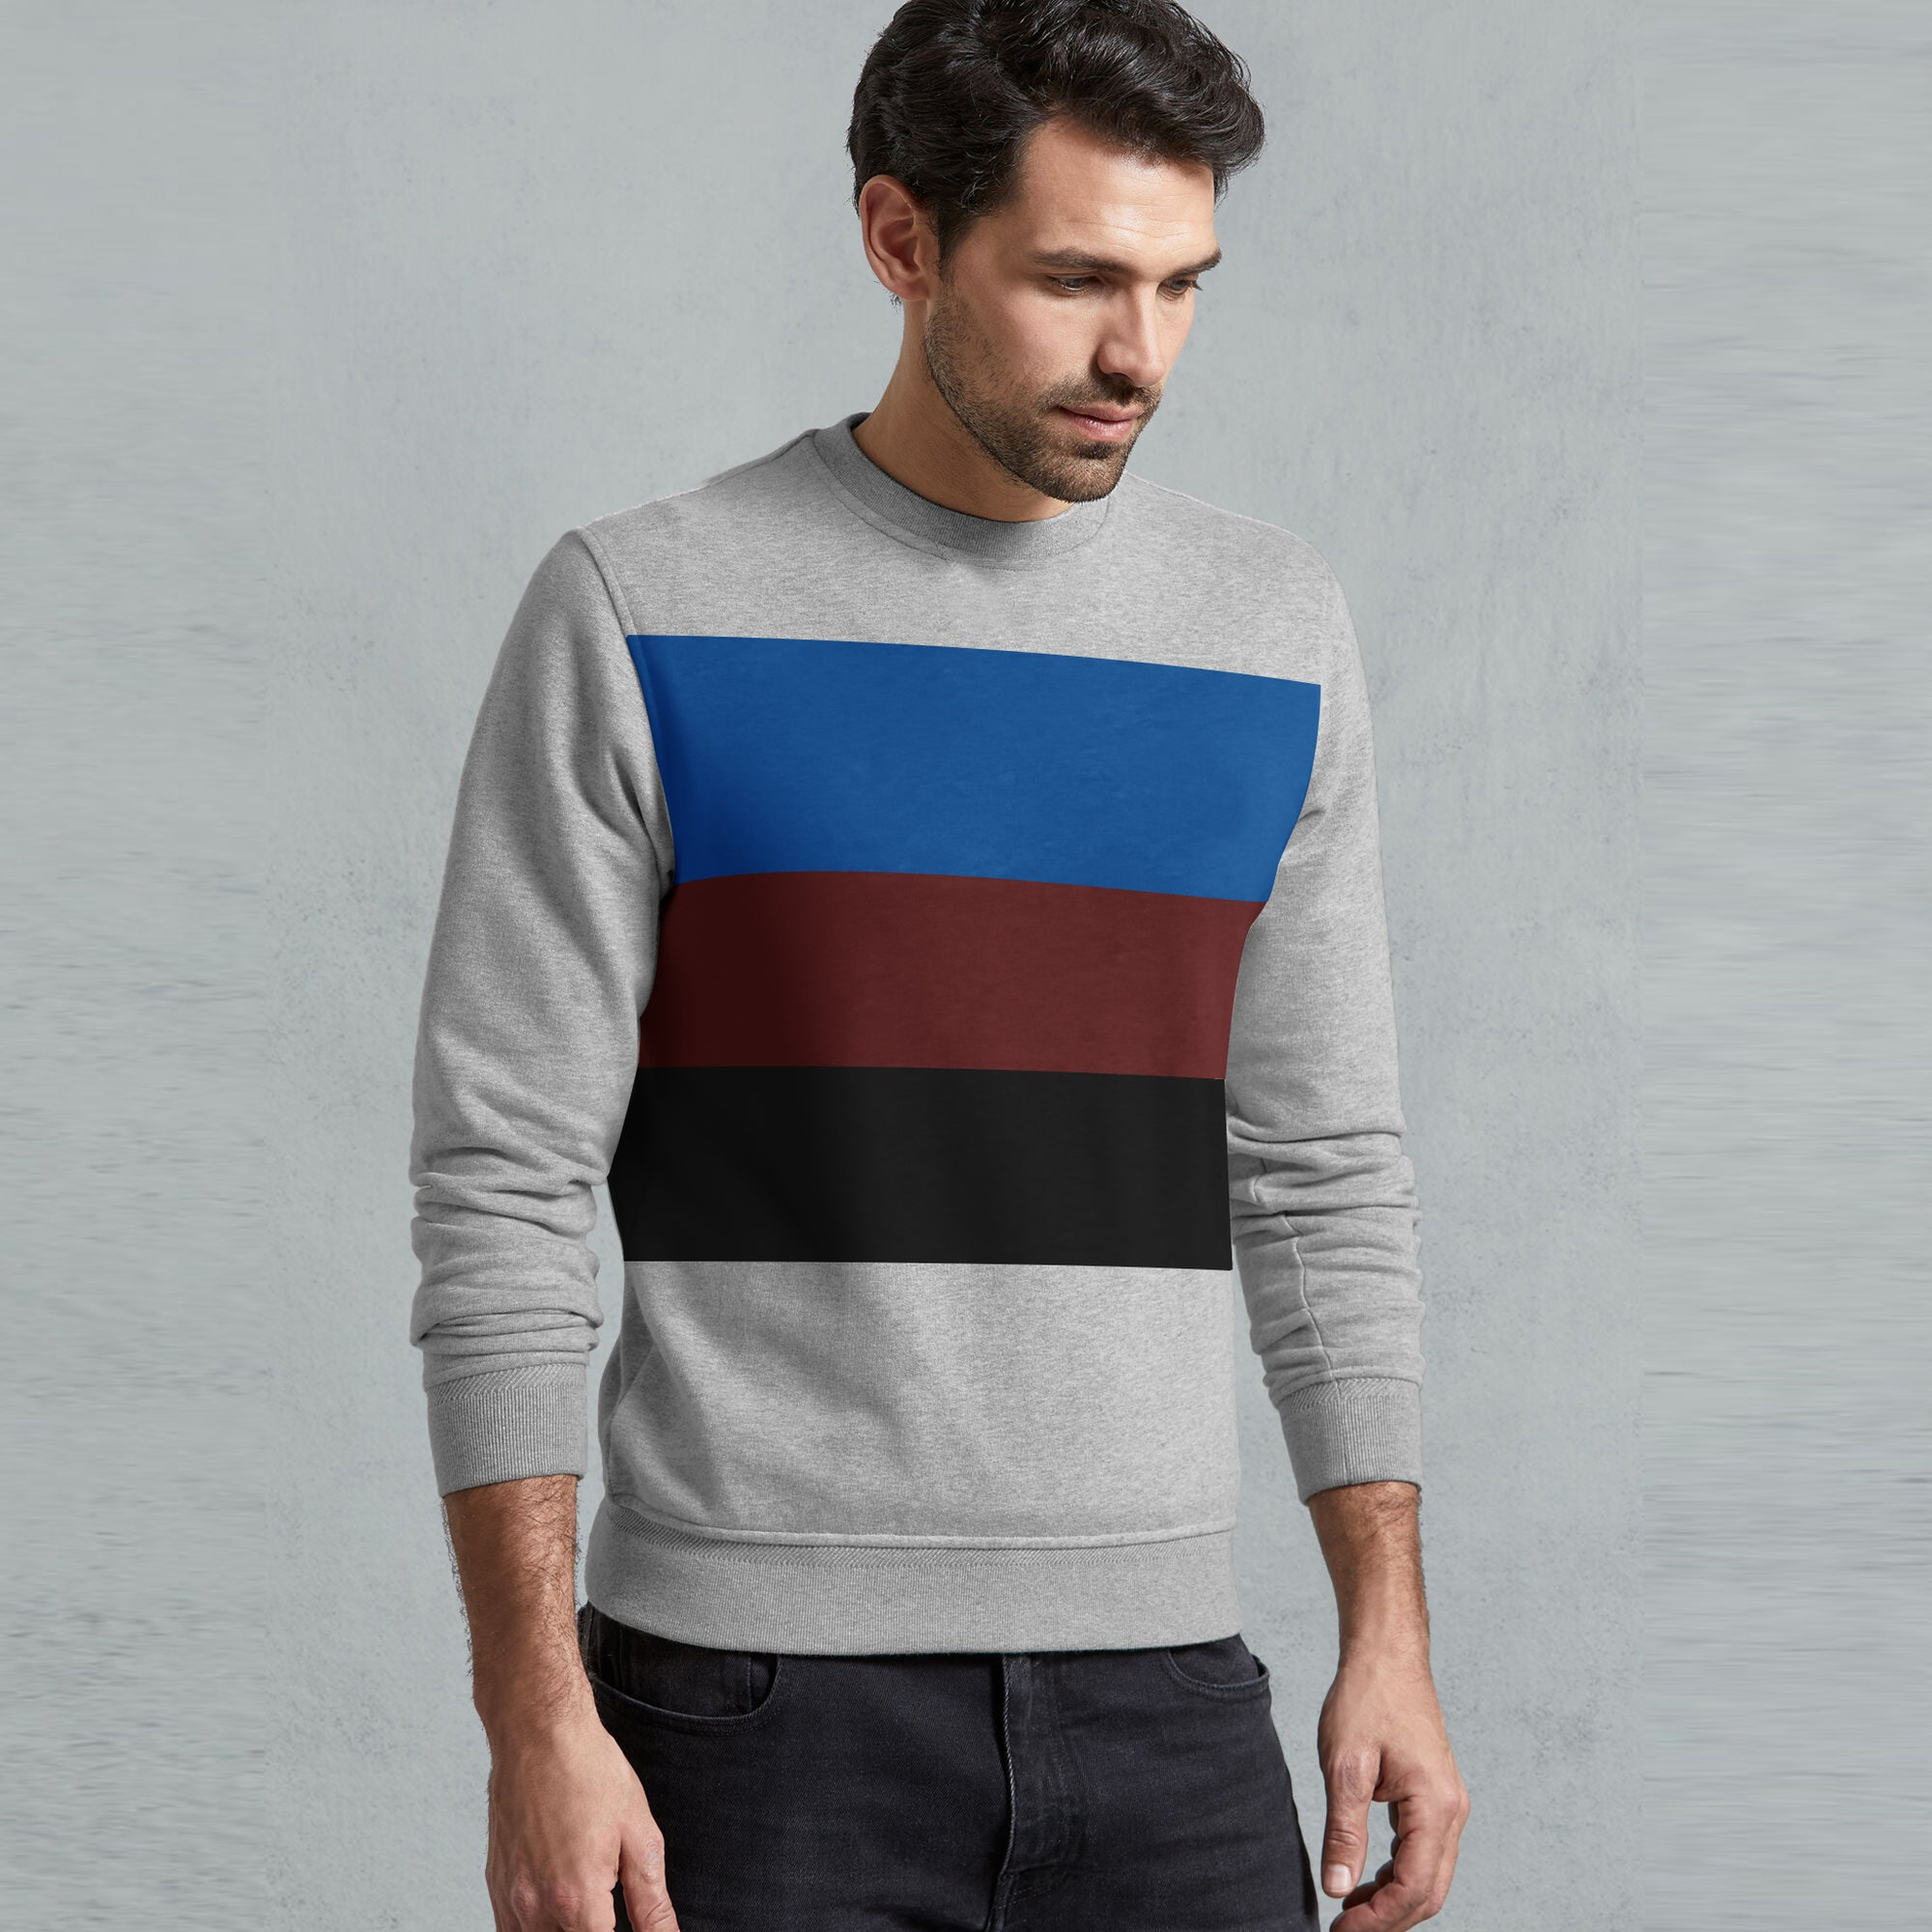 Next Fleece Crew Neck Sweatshirt For Men-Grey Melange with Panels-SP1587